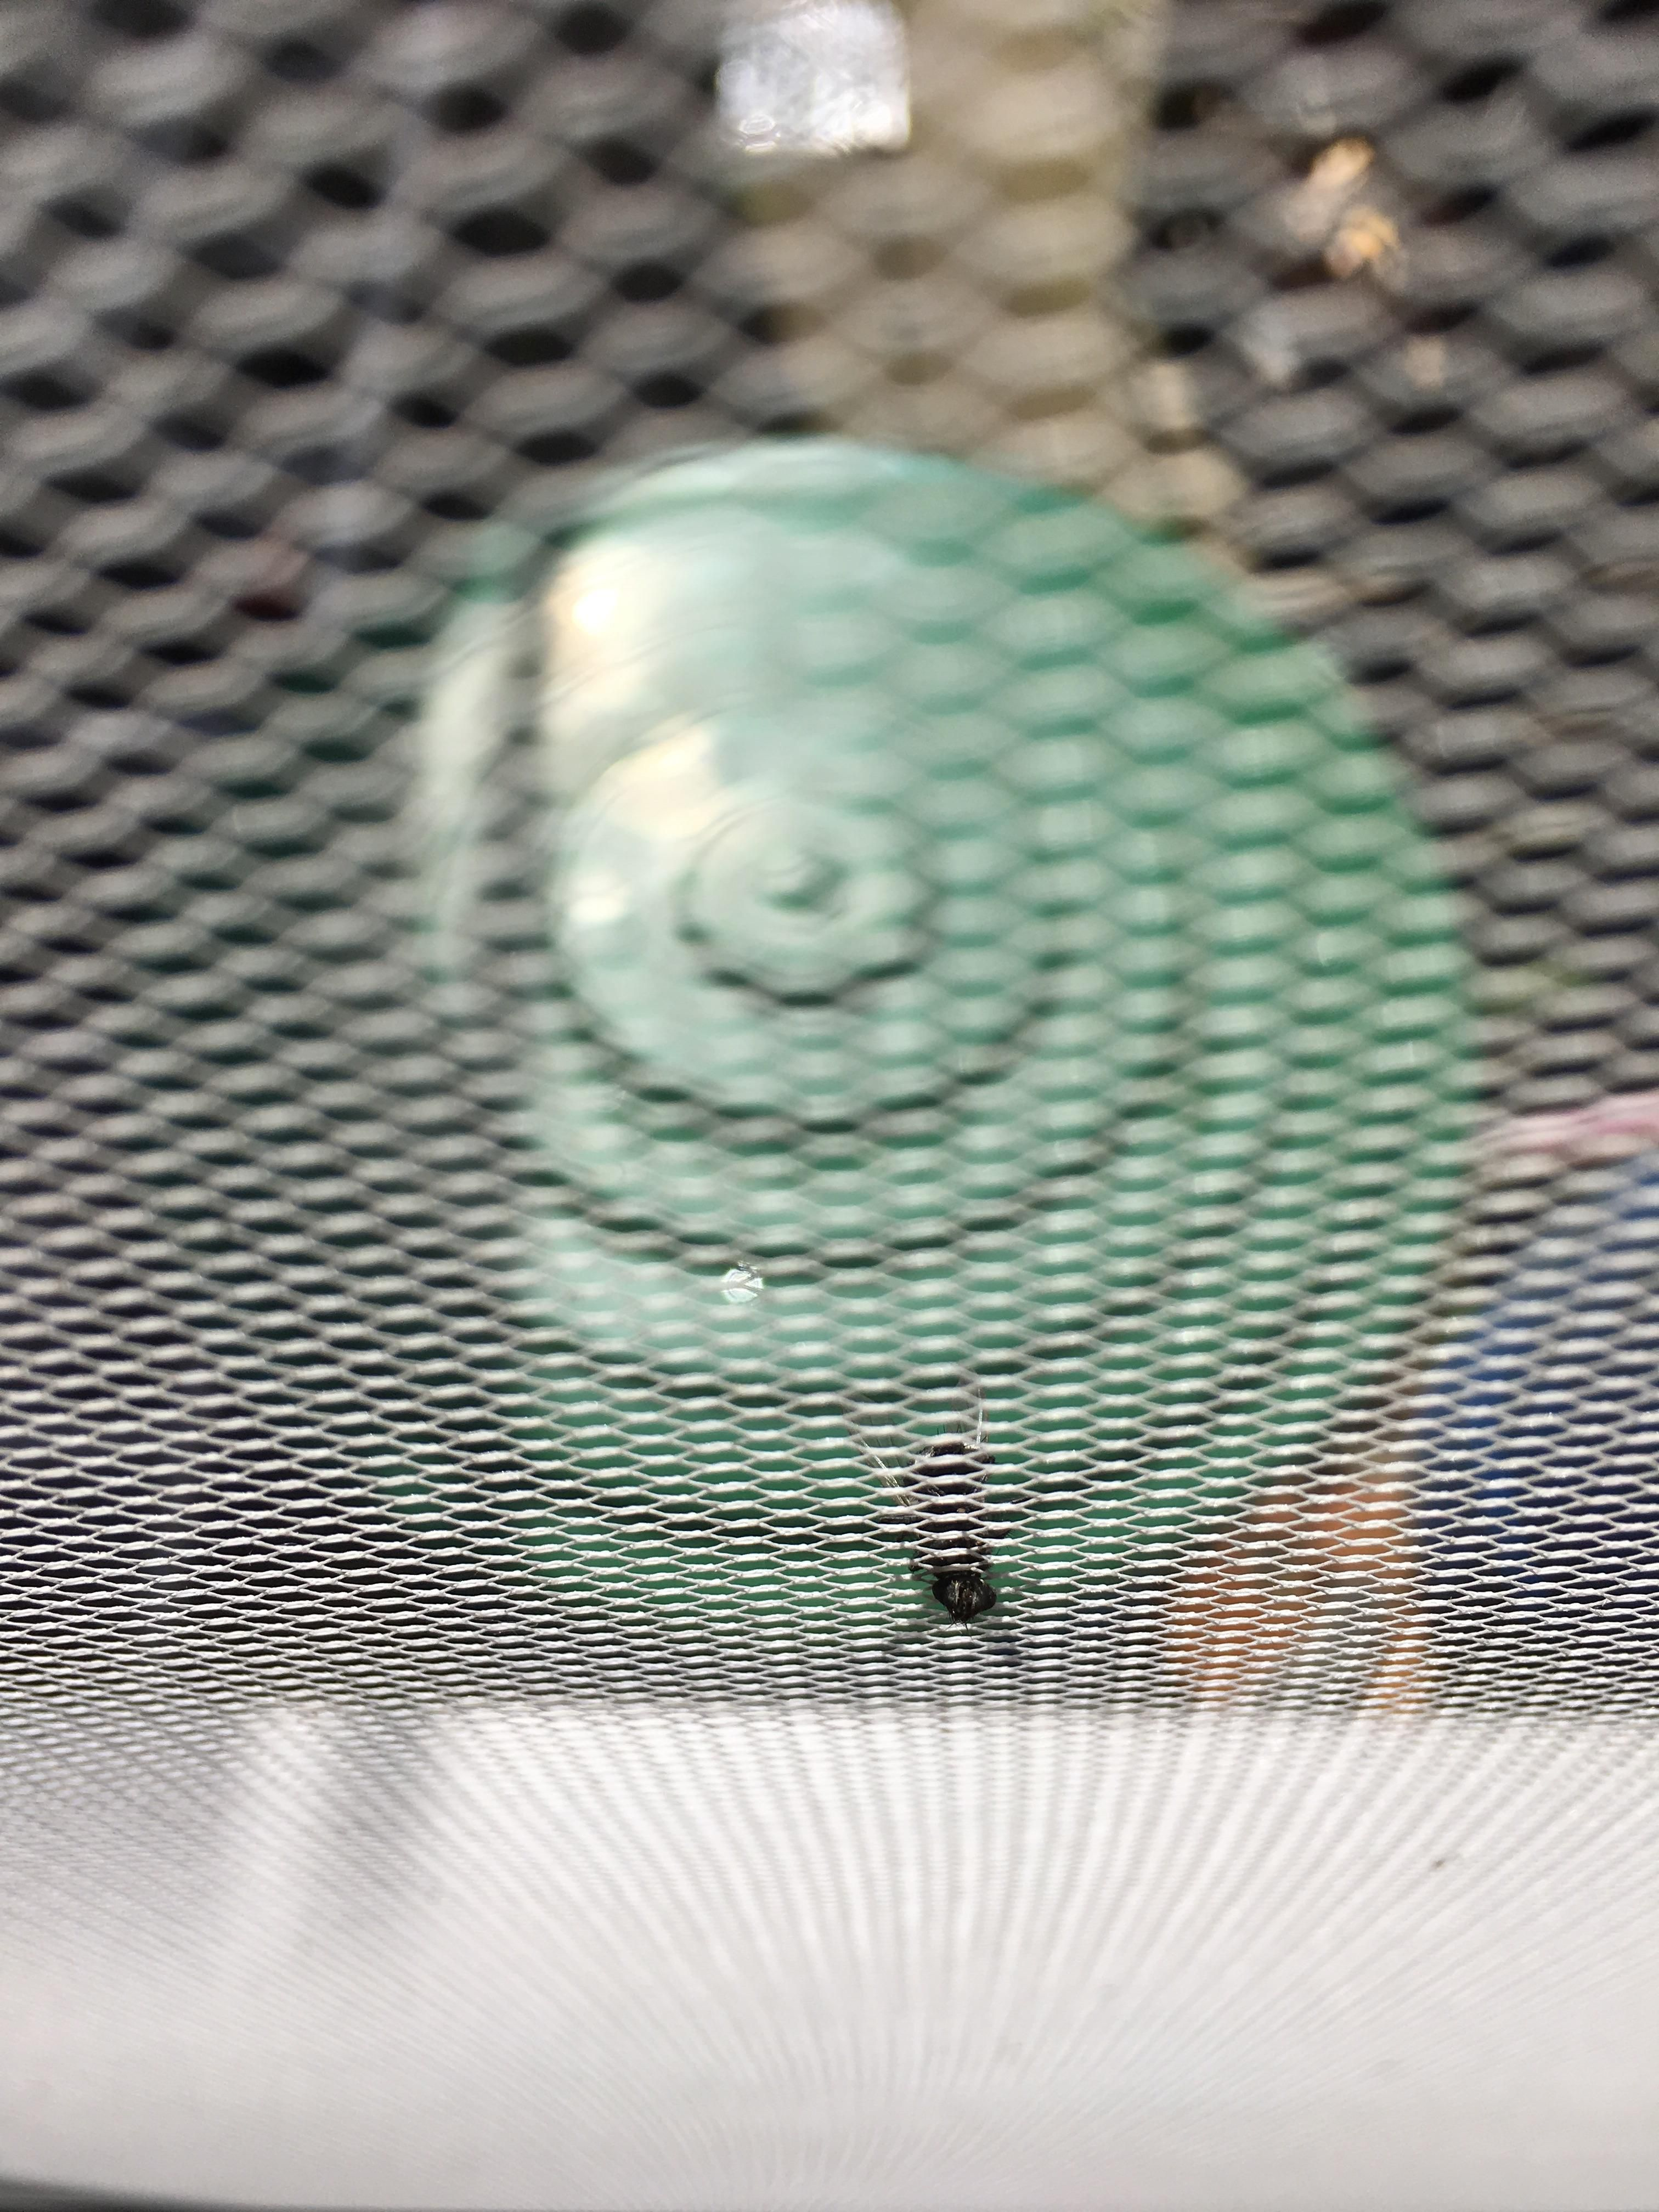 A fly landed head first in our fly screen Engagement